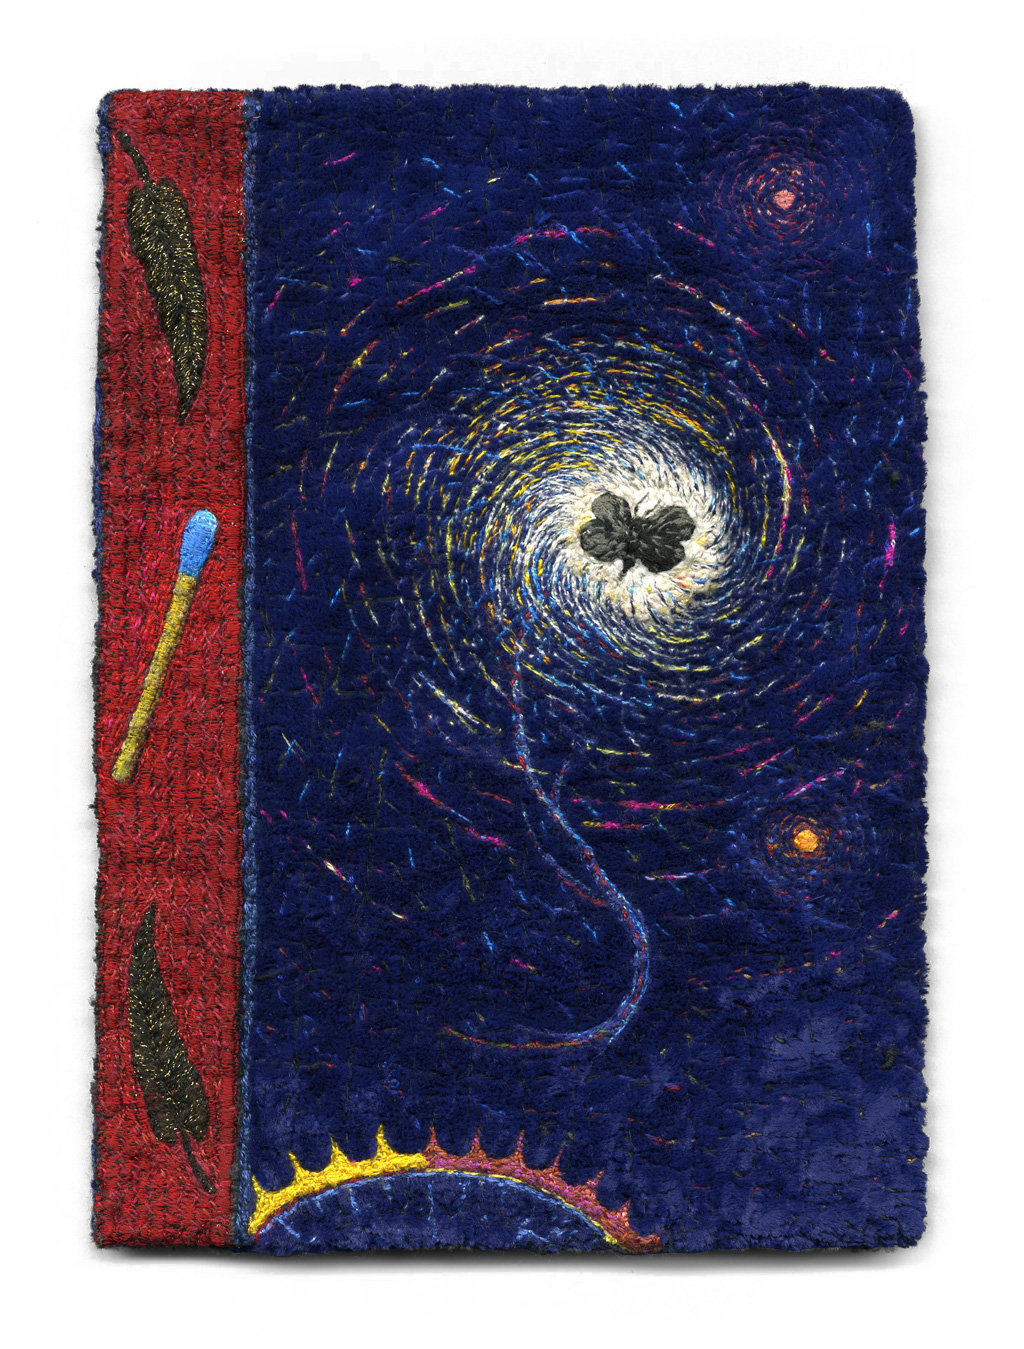 "Tom Lundberg,  Breviary , 2010, 7"" x 5"", Cotton, silk, and metallic threads on rayon velvet"